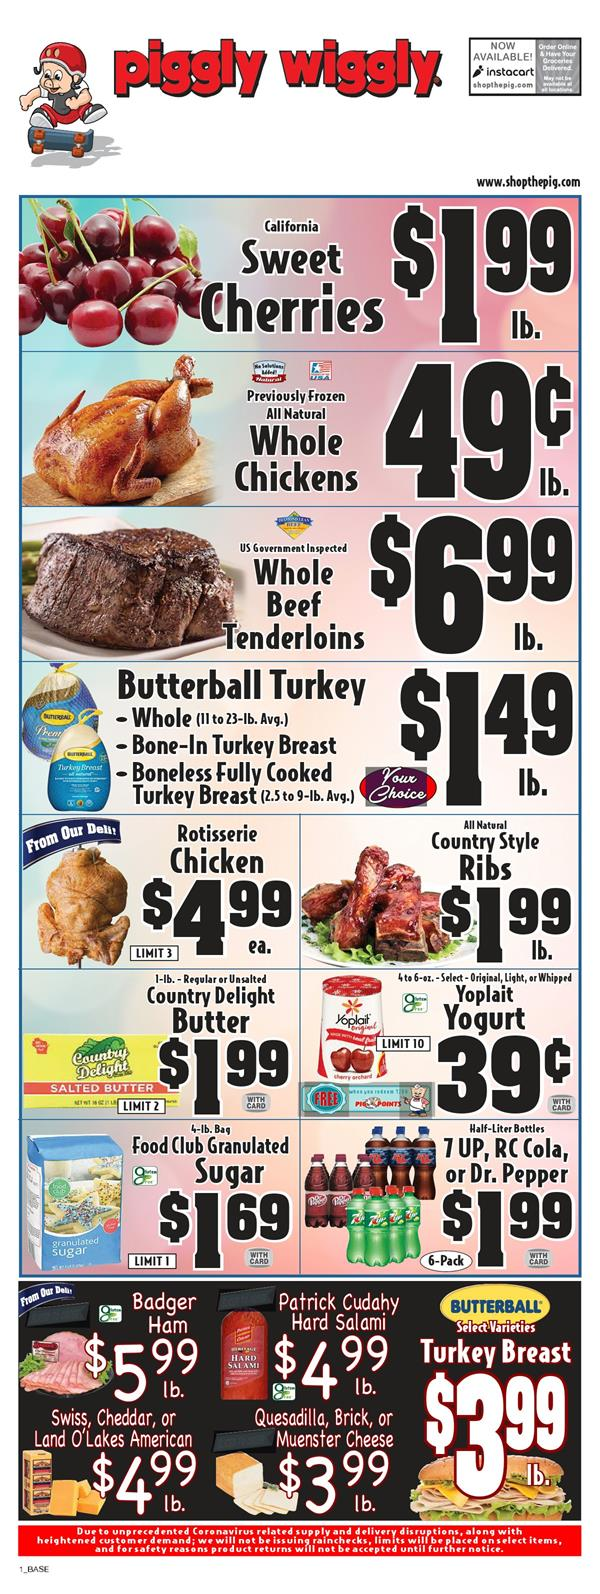 Piggly Wiggly Fresh Produce Final May Ad valid from May 27 – Jun 2, 2020